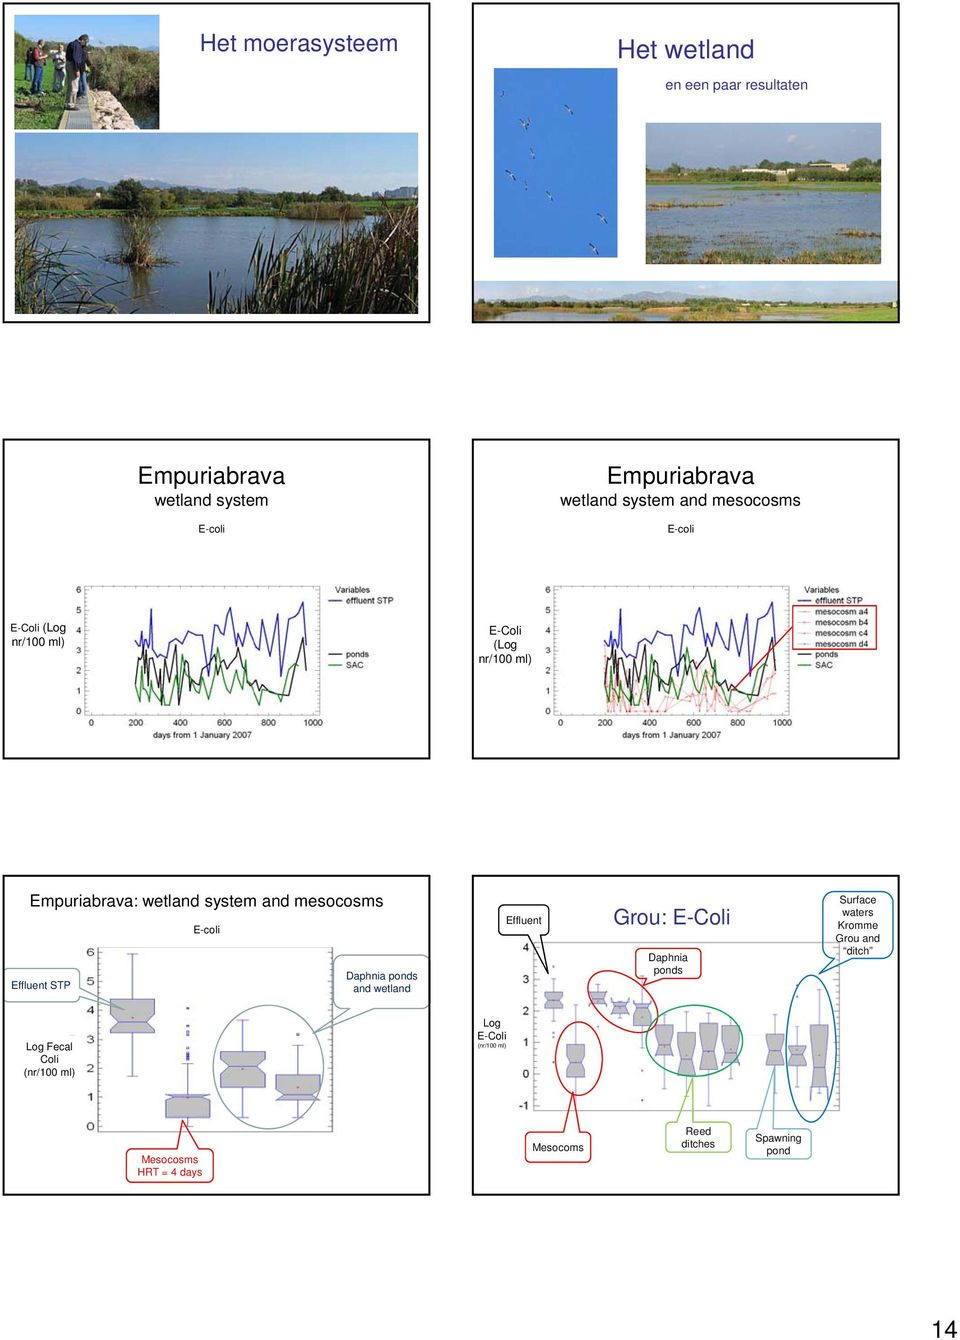 mesocosms Effluent STP E-coli Daphnia ponds and wetland Effluent Grou: E-Coli Daphnia ponds Surface waters Kromme